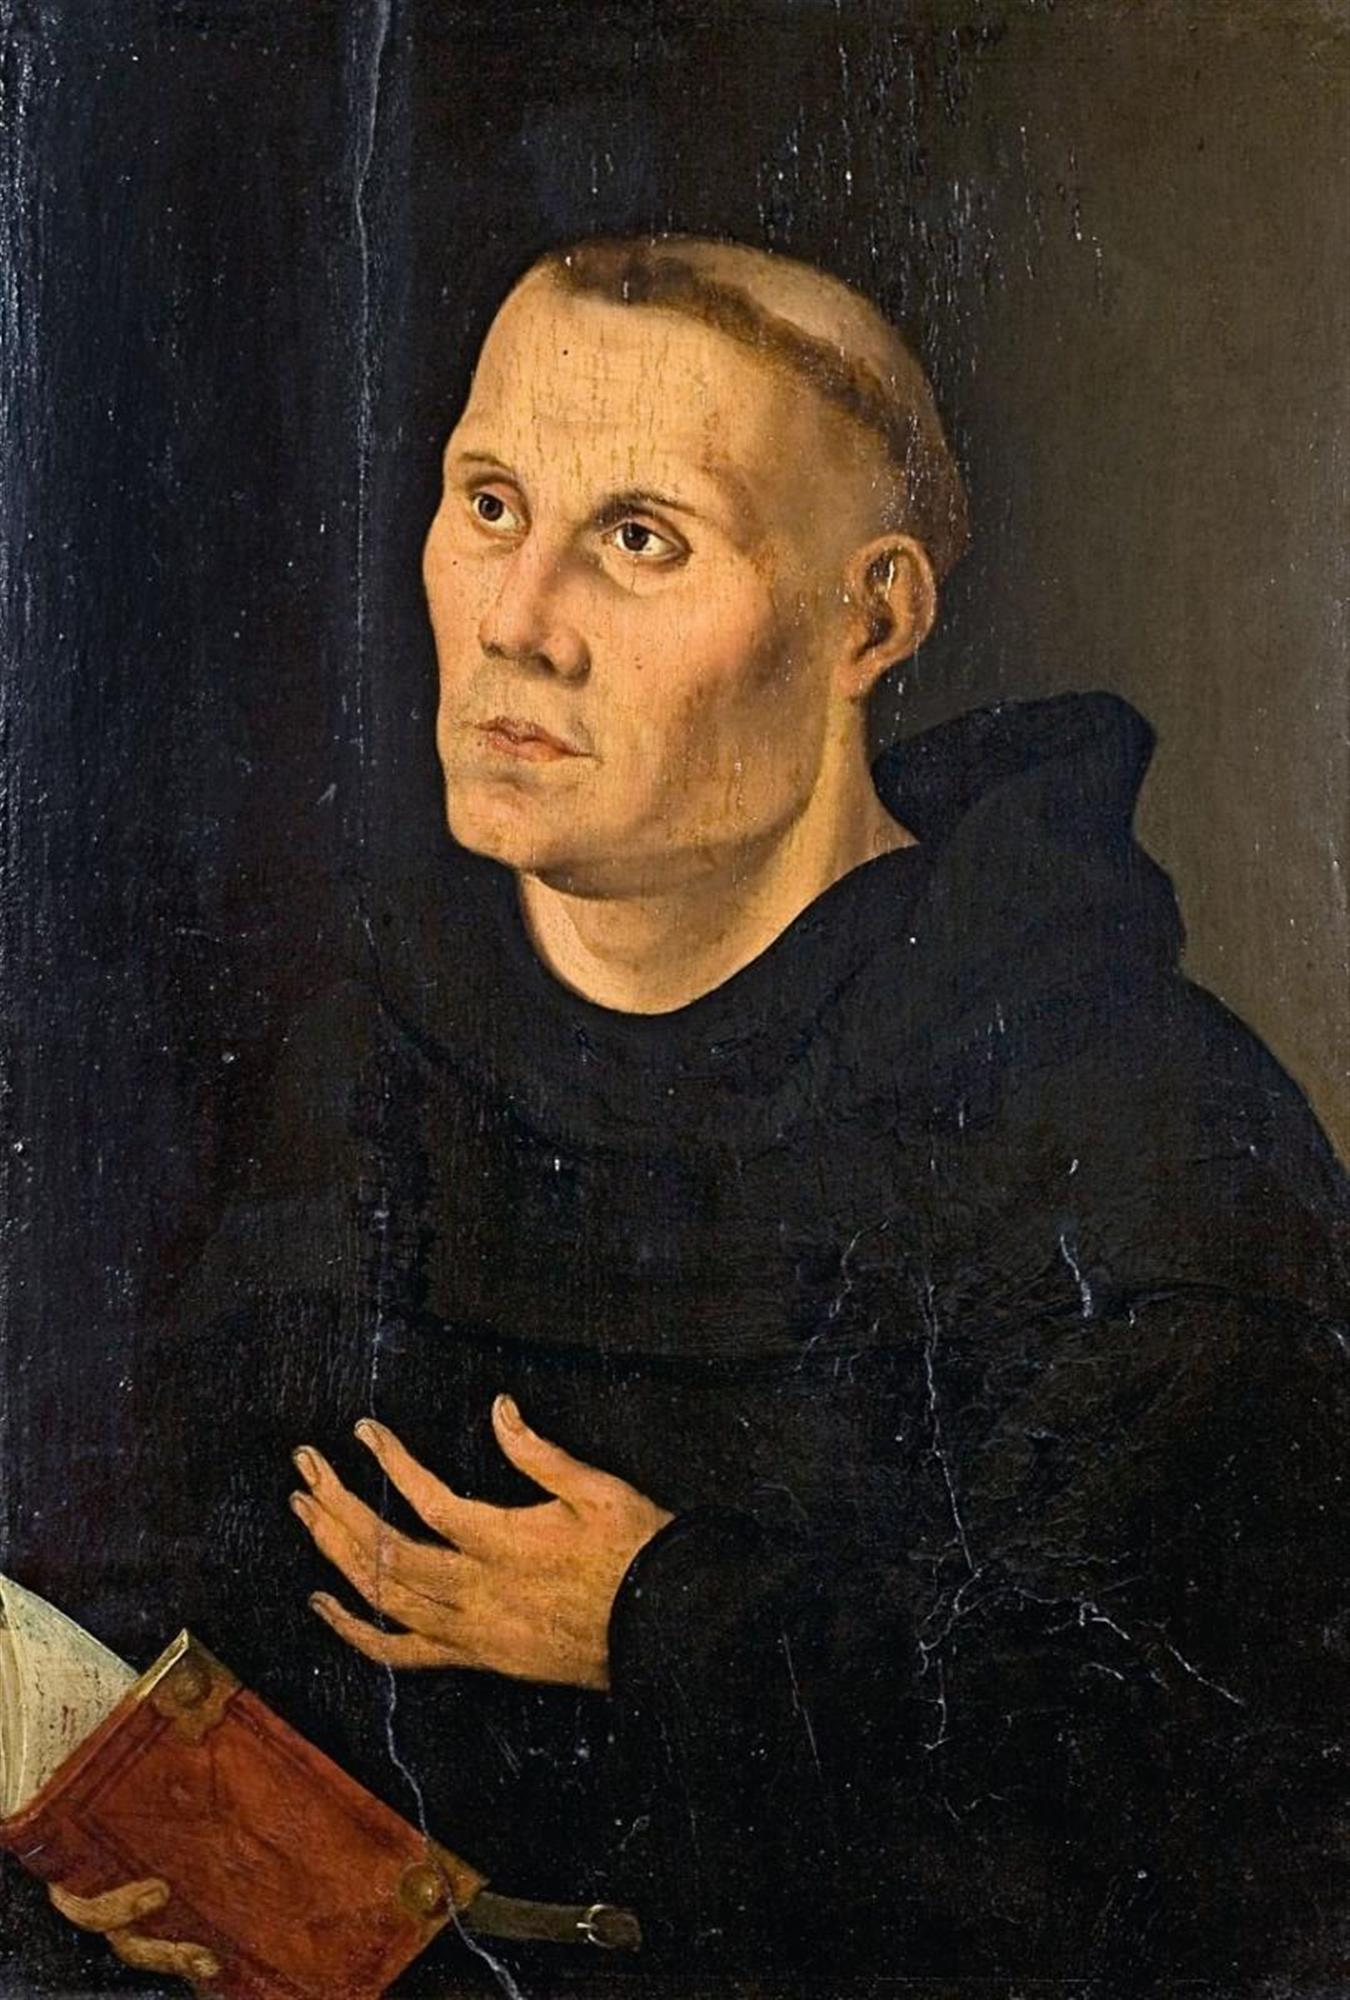 Lucas Cranach the Elder copy after MARTIN LUTHER AS MONK